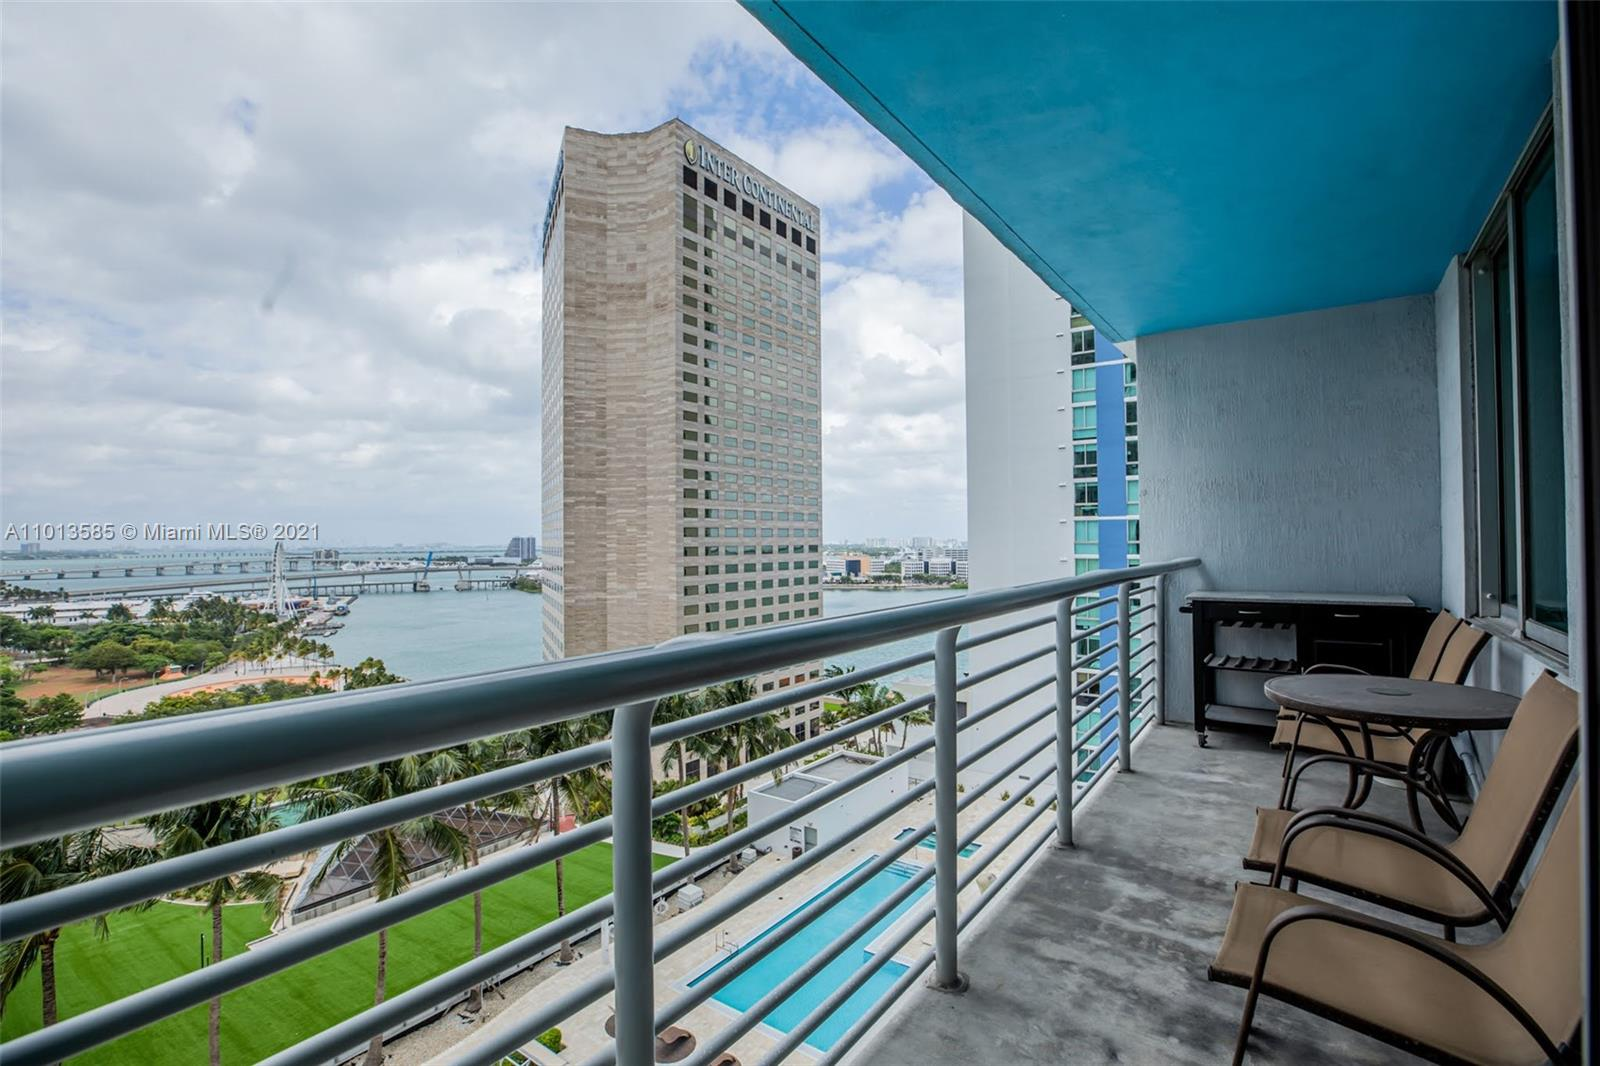 Don't miss this opportunity to own this beautiful condo located in desirable Brickell Miami. Overlooking the Miami River & the Brickell Downtown area. This 1 bedroom /1 bath  features tile & wood floors through out, beautiful built -ins, an updated kitchen with Italian kitchen cabinets, granite countertops, & stainless steel appliances. Building amenities includes: 2 pools, 2 gyms, 2 party rooms, jacuzzi, conf. room, convenience store, 24 hrs security, valet, and concierge. Take pleasant walks to Bayfront Park & Bayside Marketplace. Centrally located within minutes to South Beach, Coconut Grove,  Coral Gables, and Miami Airport.  *Apartment is rented until November 26, 2021*